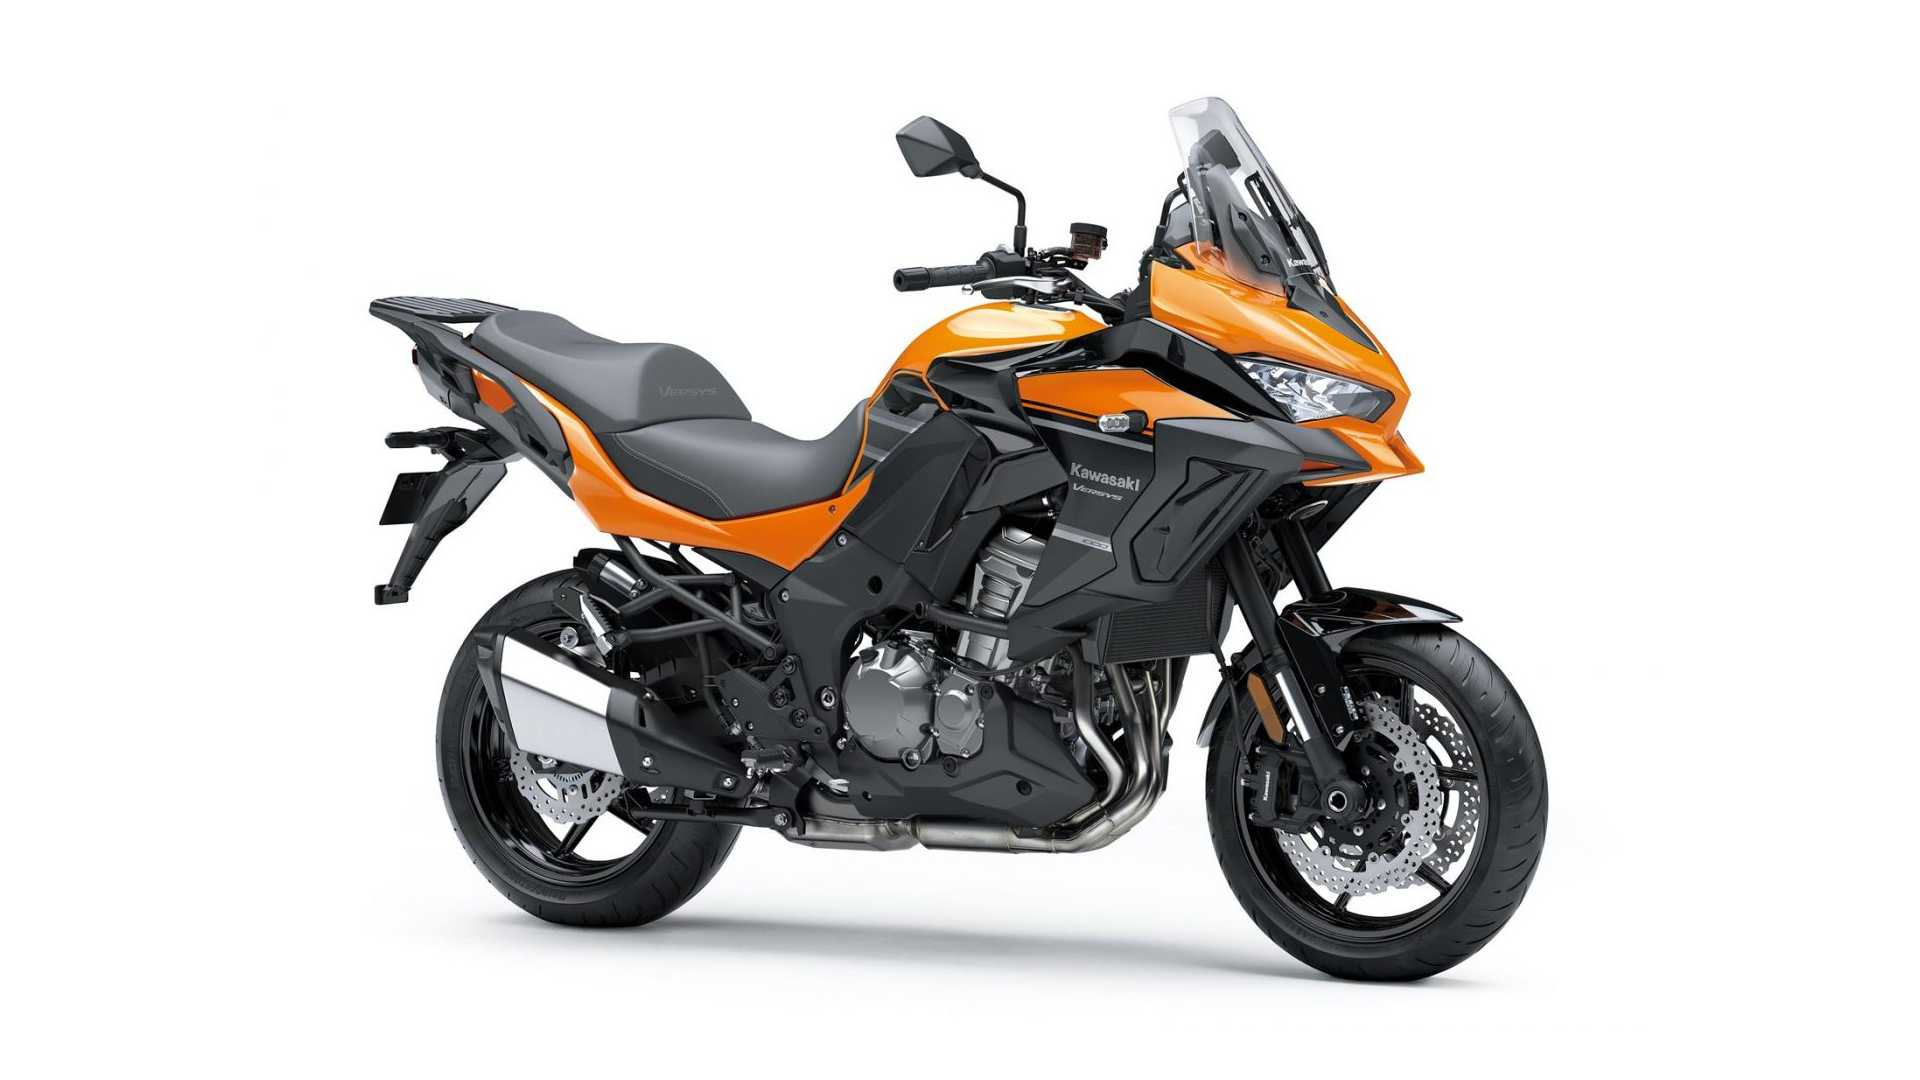 2019 kawasaki versys 1000 bookings open in india with token amount of rs 1 5 lakh technology. Black Bedroom Furniture Sets. Home Design Ideas